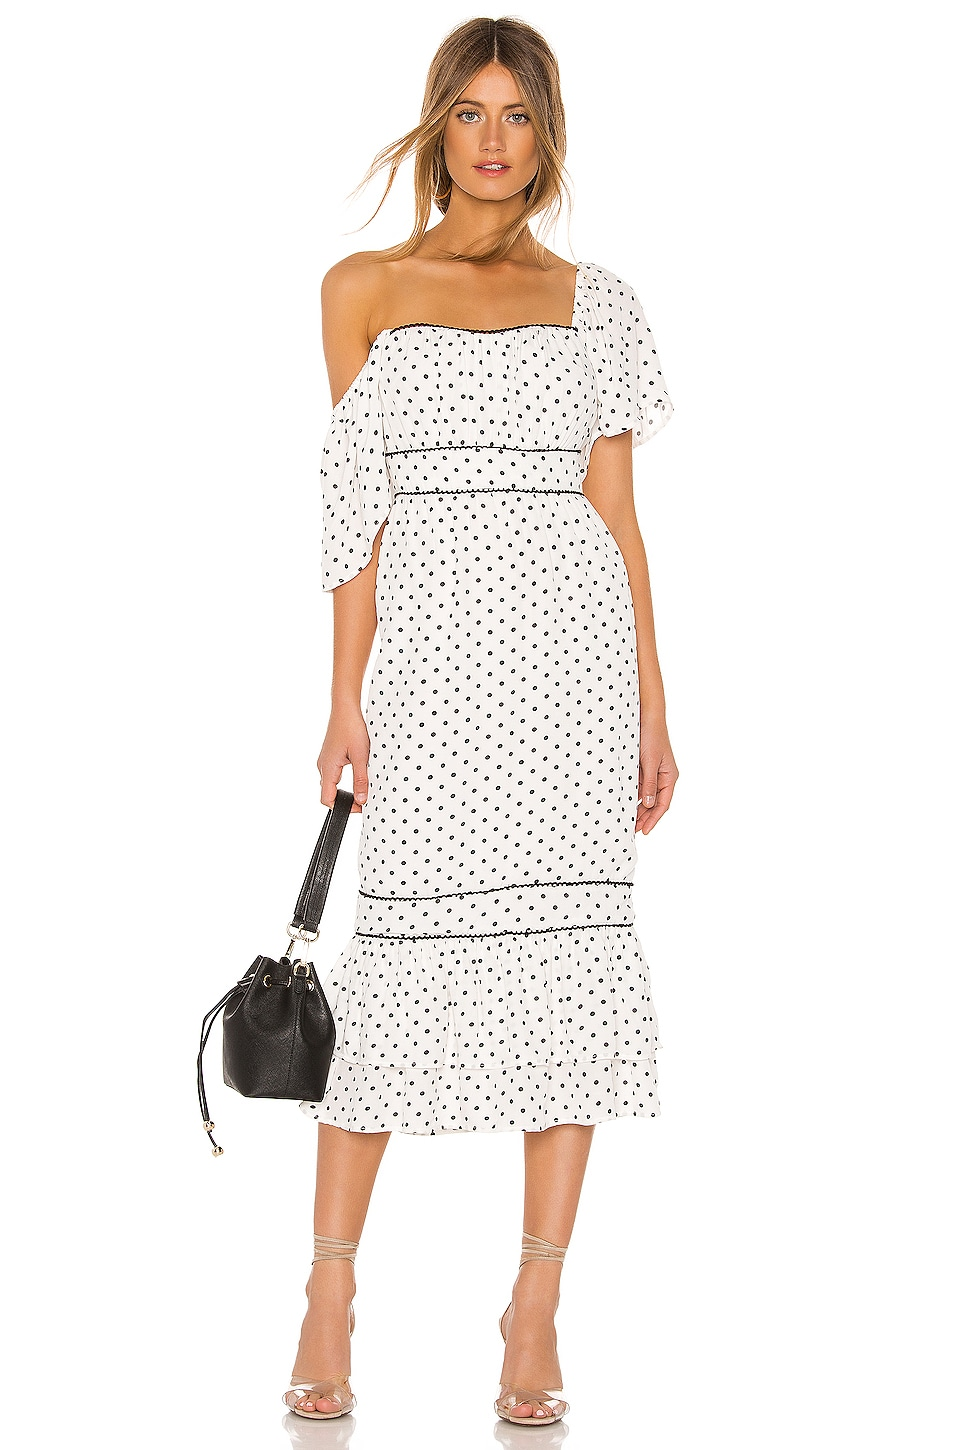 Lovers + Friends VESTIDO MIDI ALBA